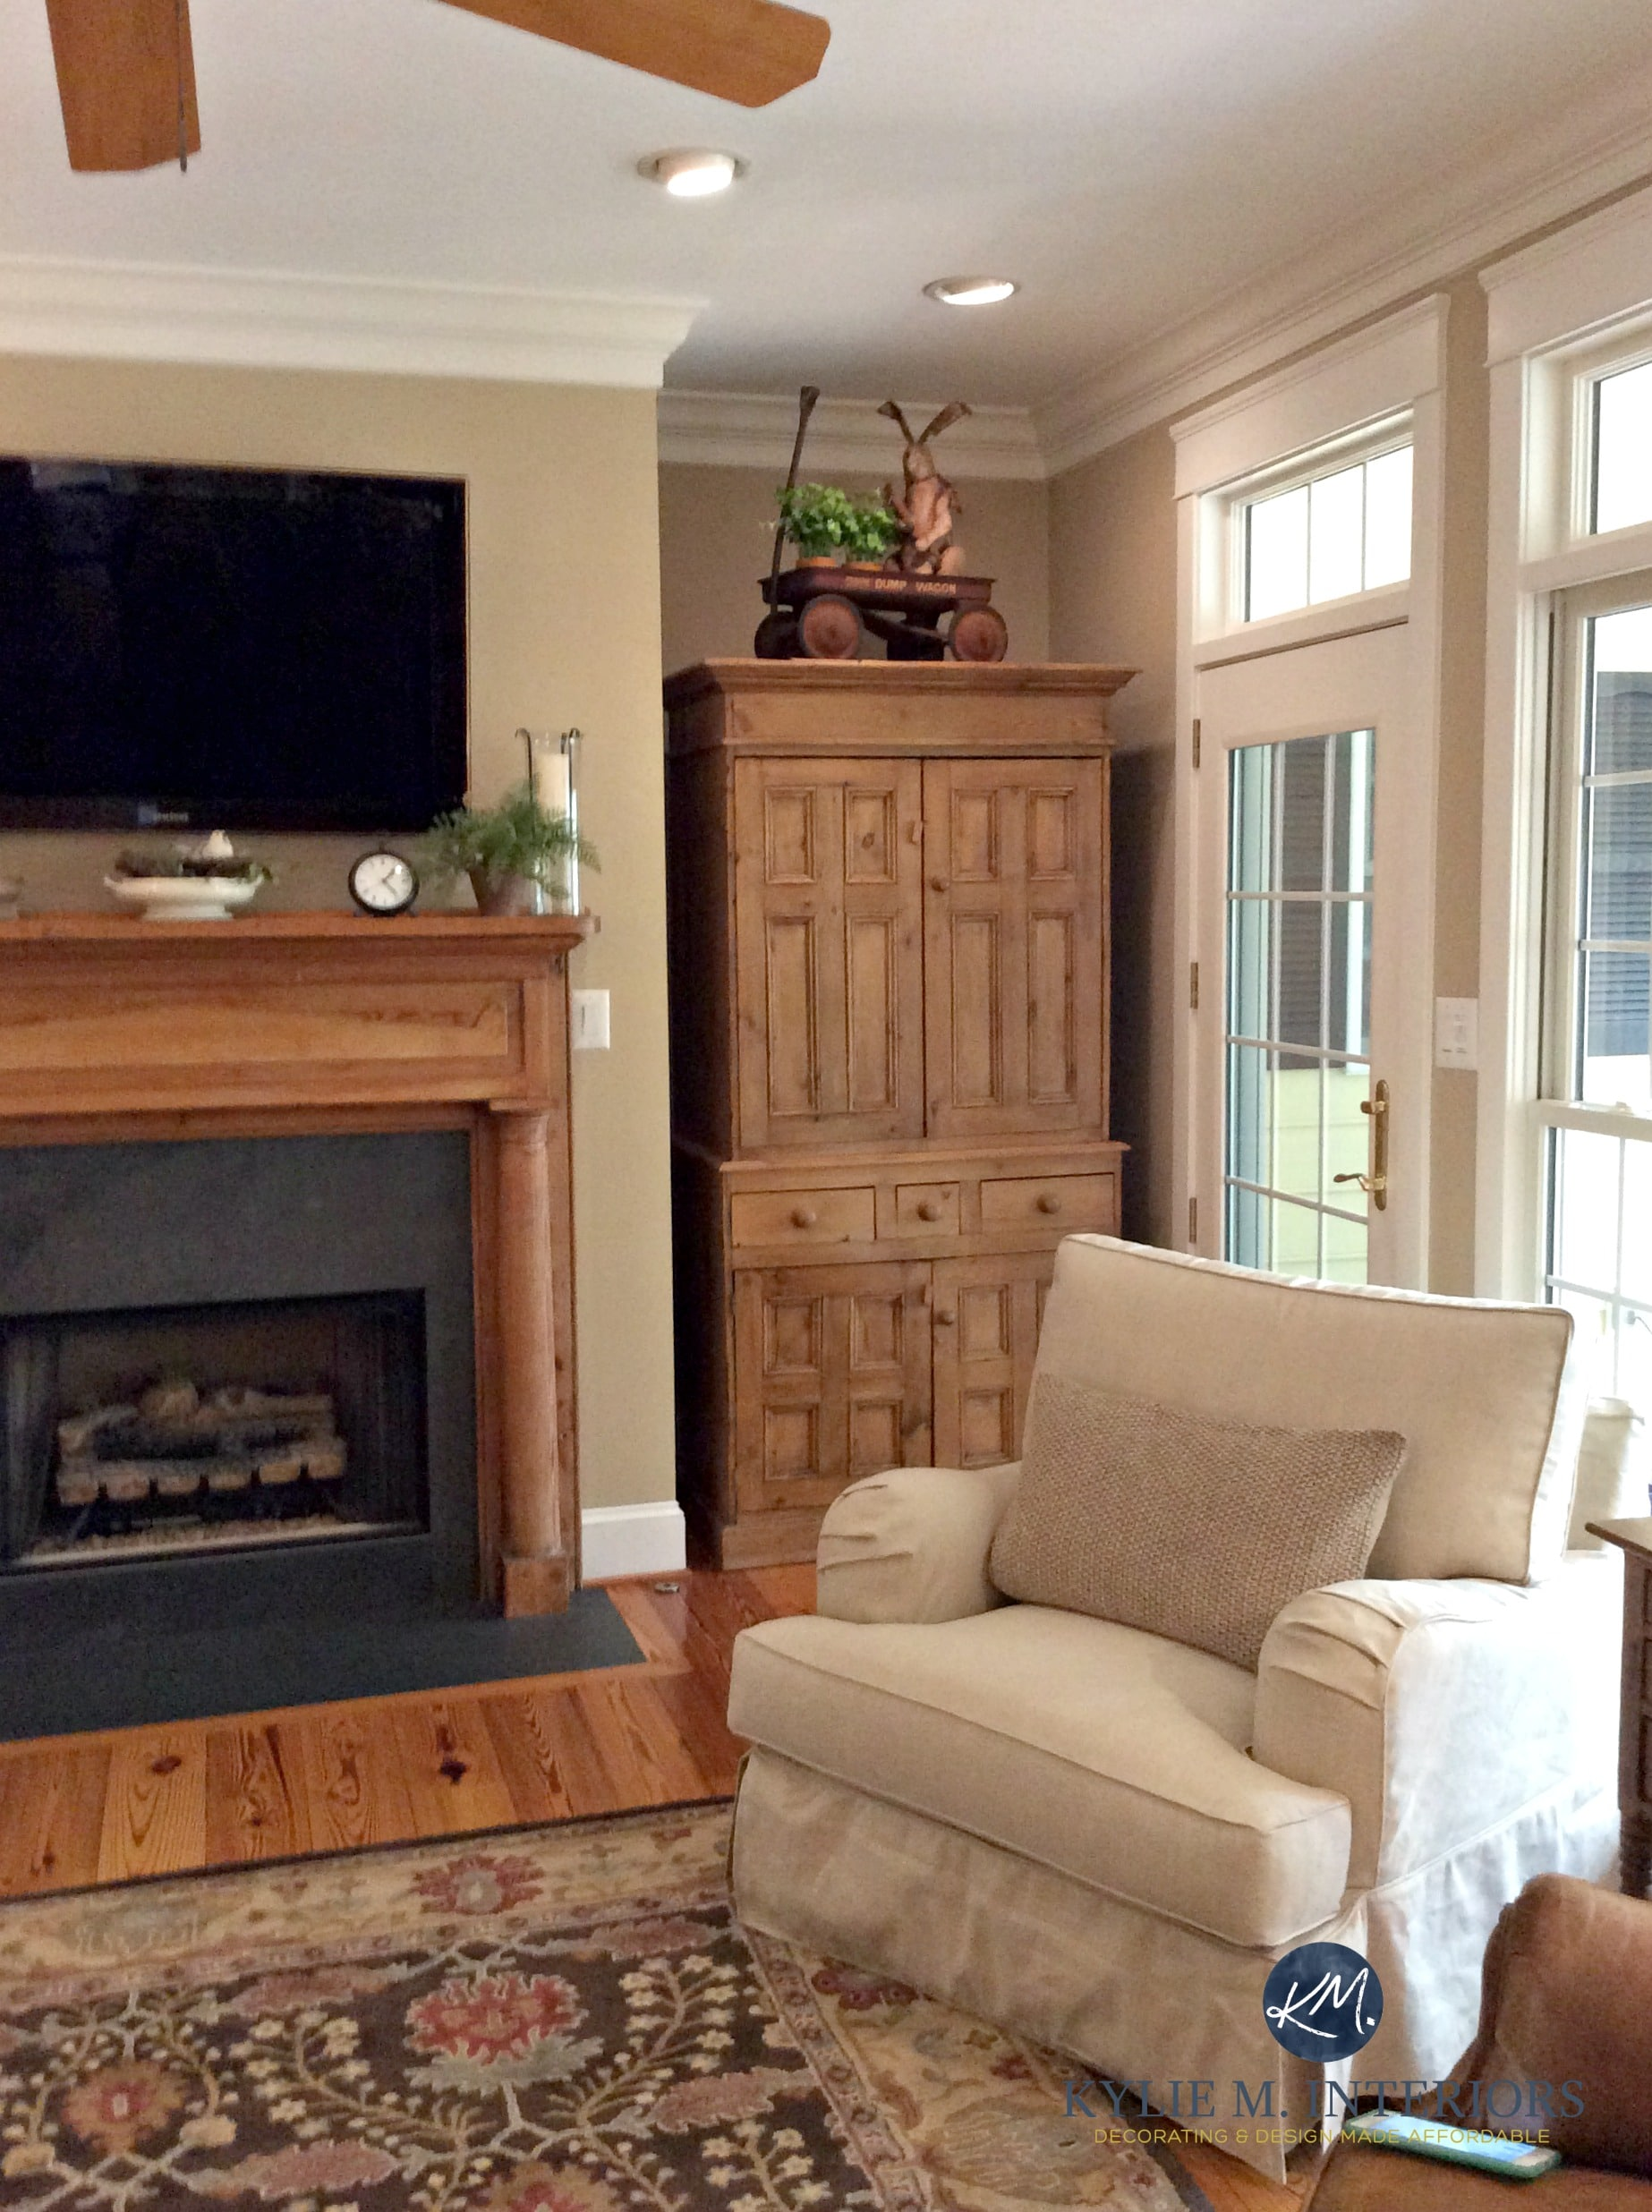 Lenox Tan Benjamin Moore In Warm Farmhouse Style Living Room With Oak Pine And Wood Fireplace